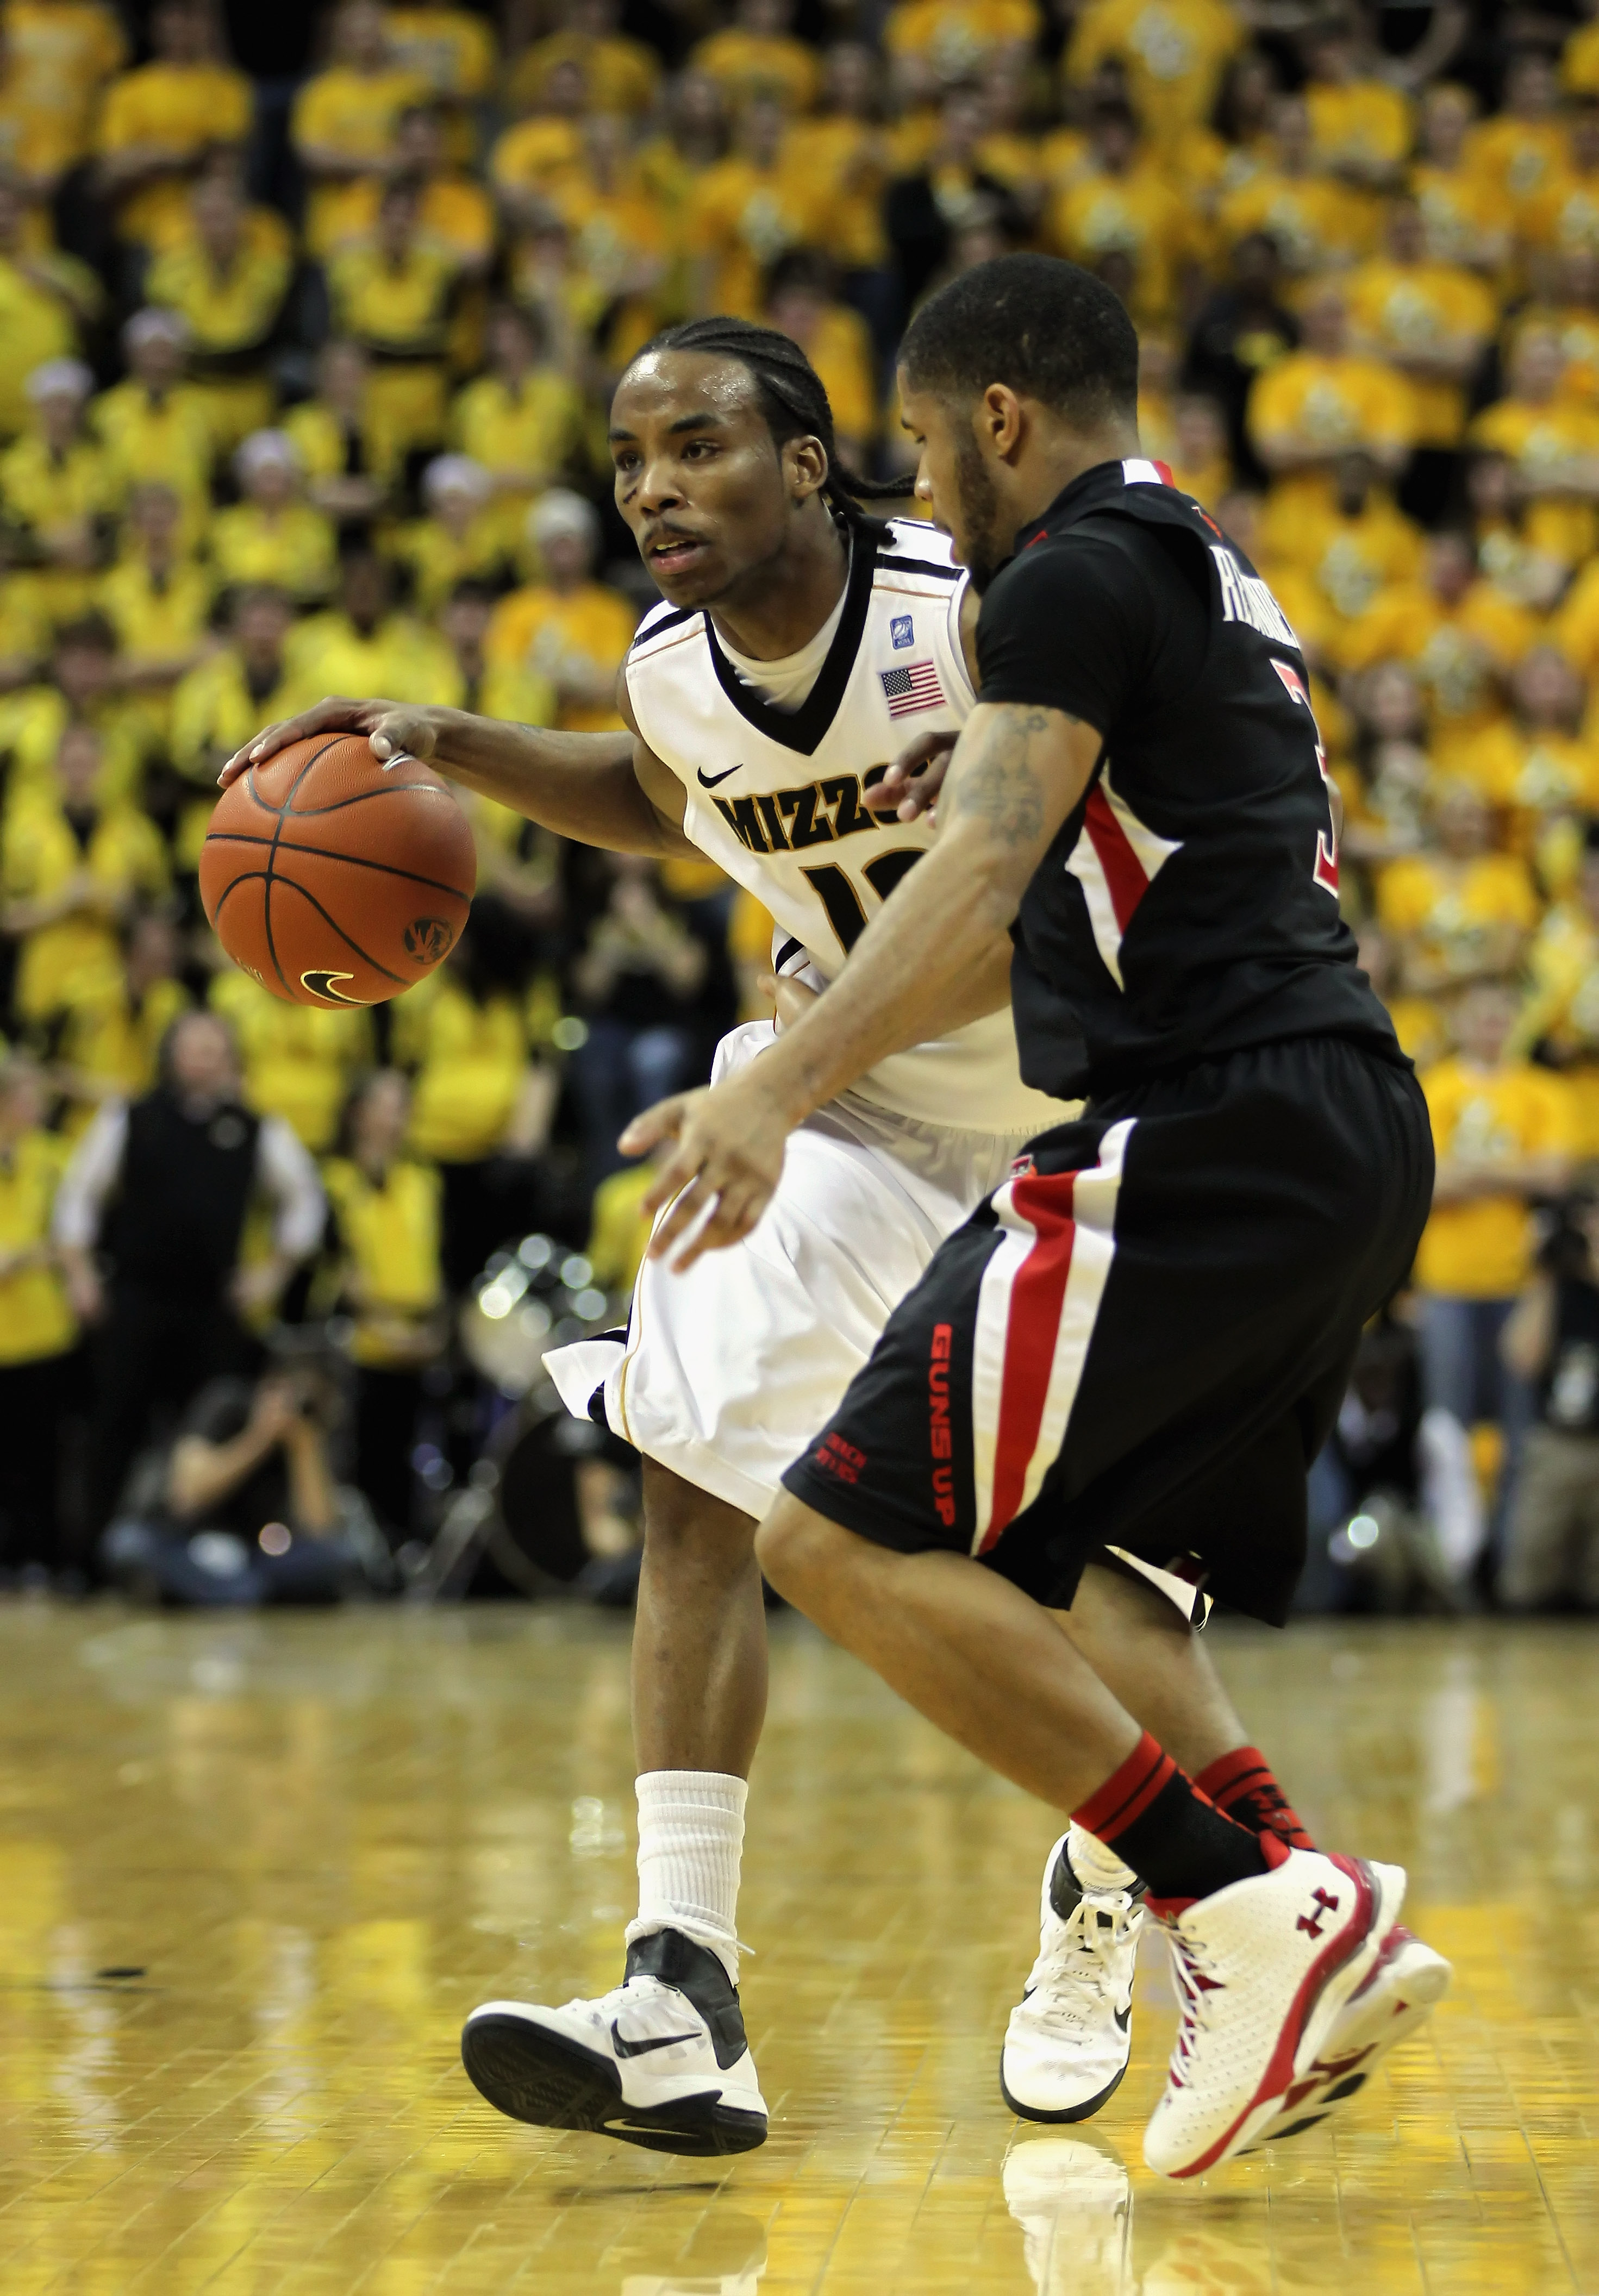 COLUMBIA, MO - FEBRUARY 15:  Marcus Denmon #12 of the Missouri Tigers controls the ball as Javarez Willis #3 of the Texas Tech Red Raiders defend during the game on February 15, 2011 at Mizzou Arena in Columbia, Missouri.  (Photo by Jamie Squire/Getty Ima